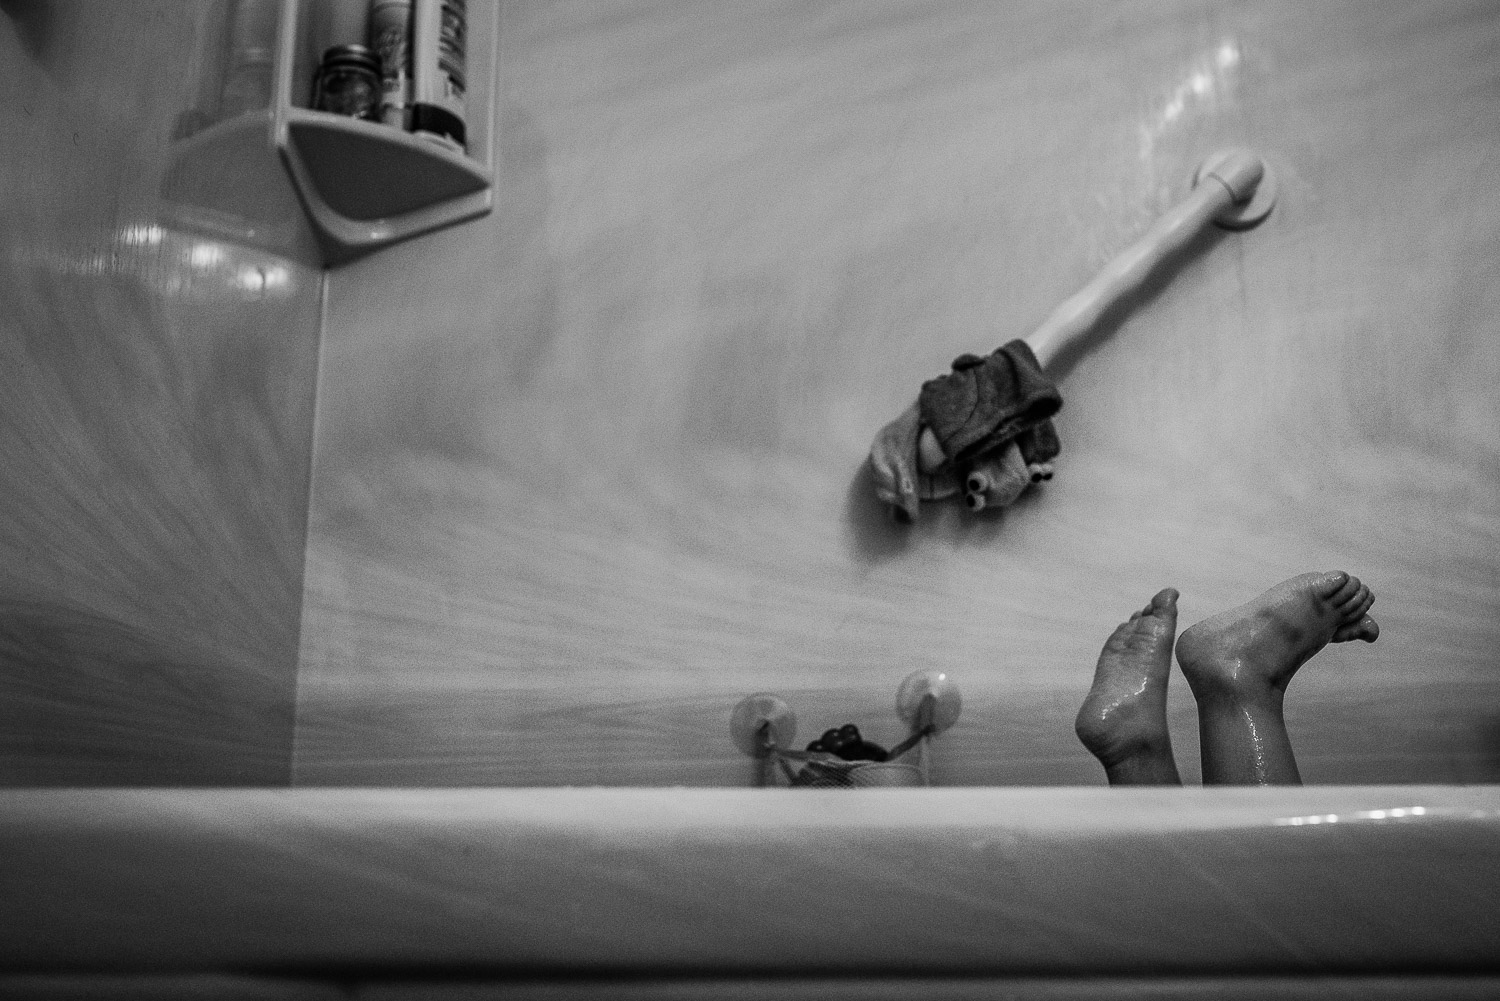 Black and white image of a bathtub with a few toys scattered about and two small toddler feet sticking out without being able to see who they are attached to.